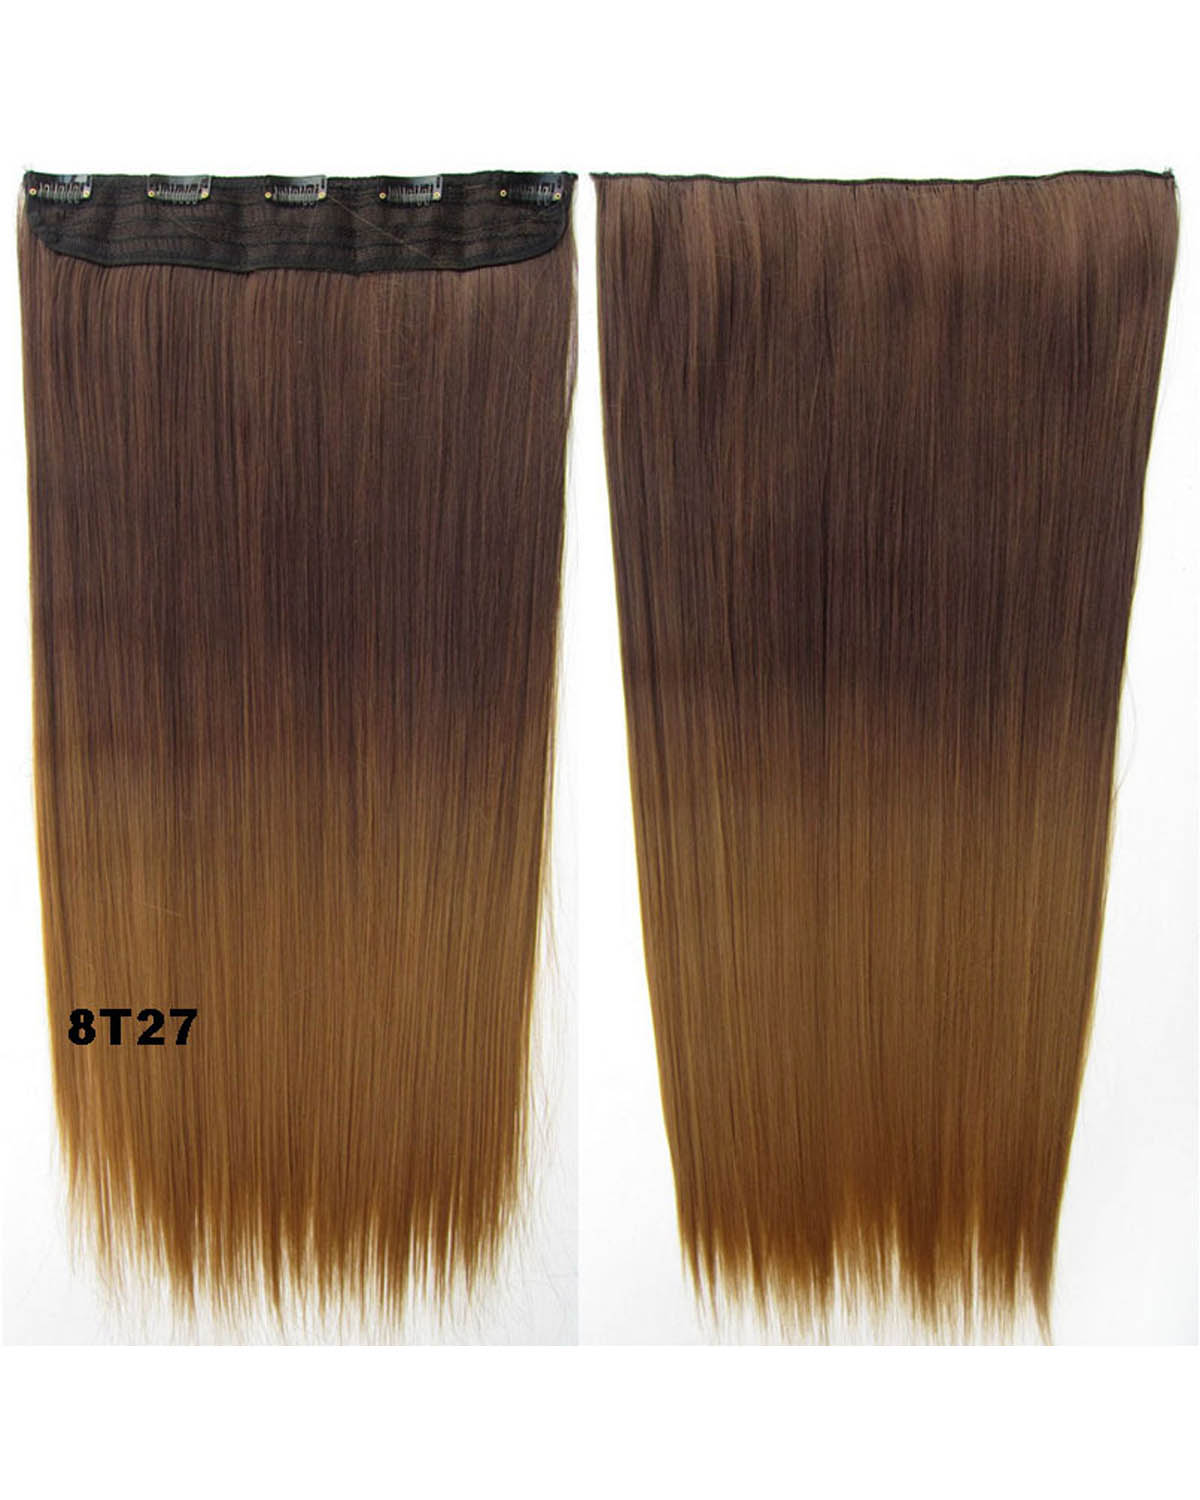 24 Inch Female Korean Style and Fashional Straight One Piece 5 Clips Clip in Synthetic Hair Extension Ombre 8T27